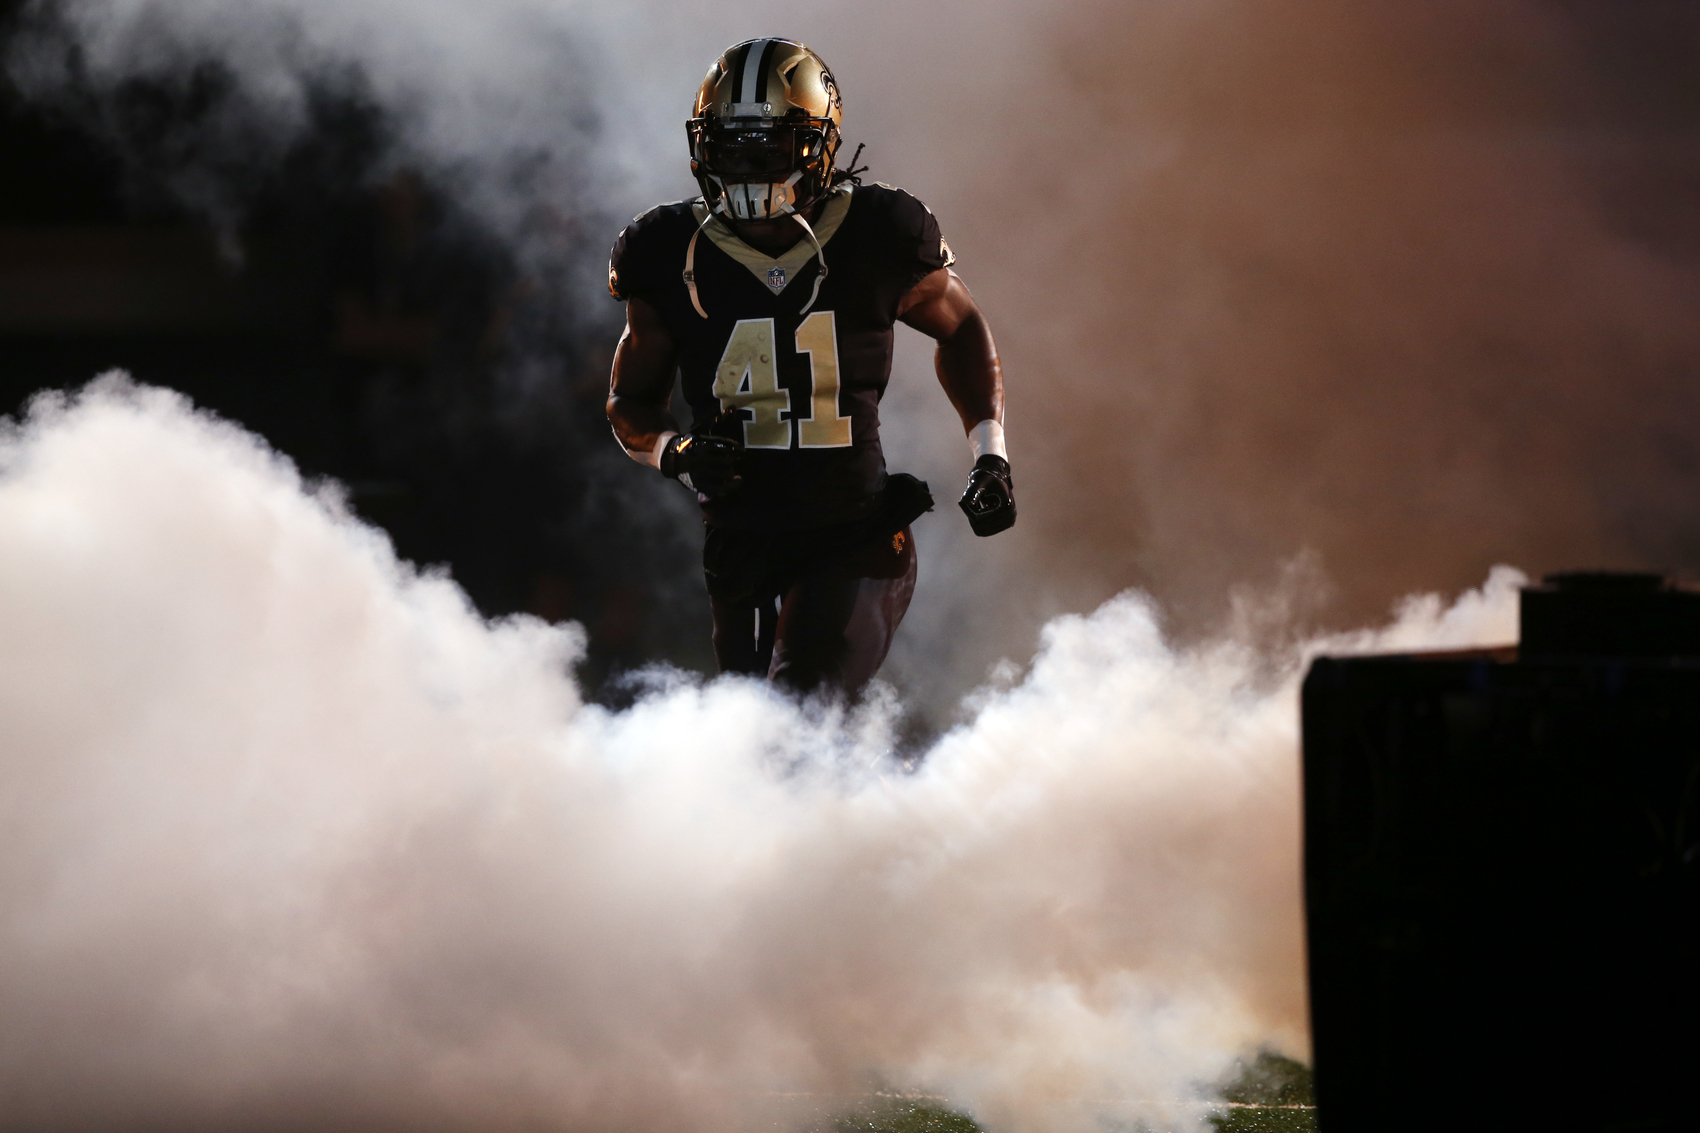 New Orleans Saints running back Alvin Kamara (41) runs on the field for player introductions during pre-game ceremonies before an NFL football game against the Carolina Panthers in New Orleans, Sunday, Dec. 3, 2017. (AP Photo/Gerald Herbert)